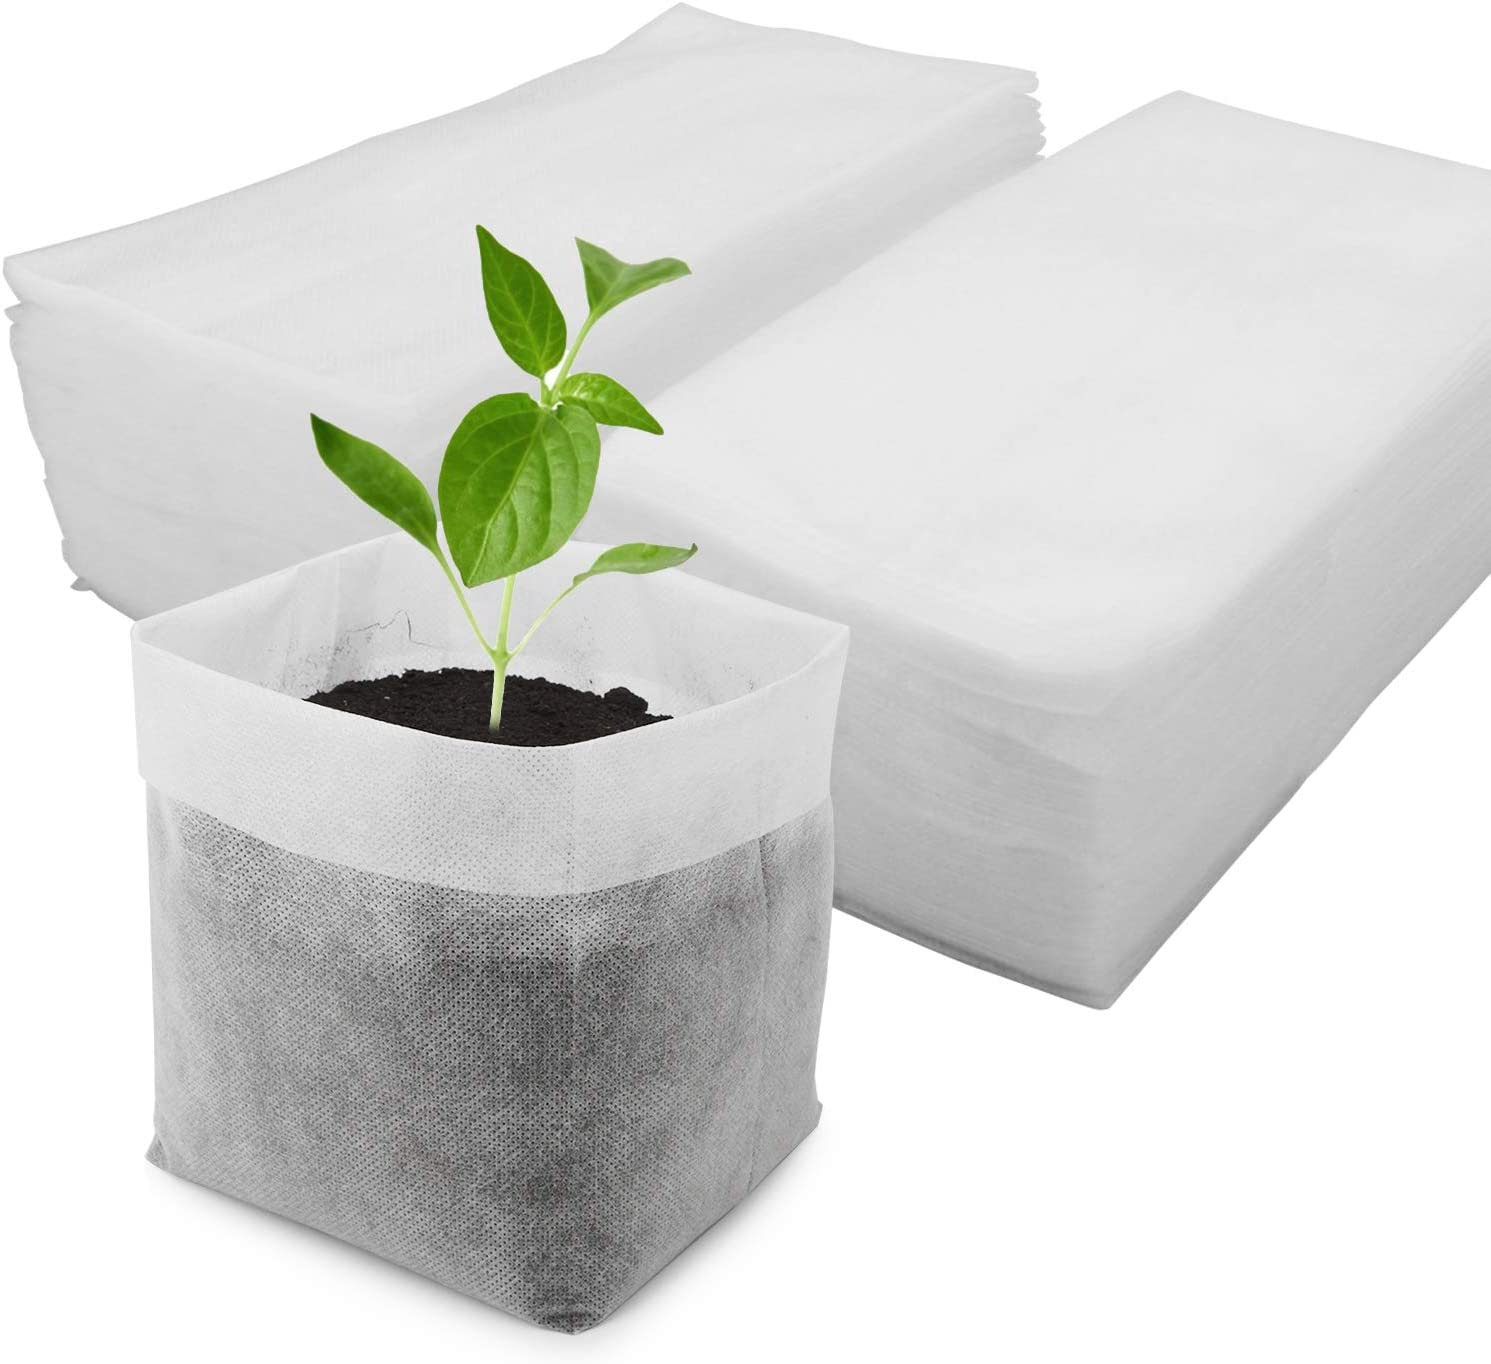 ENPOINT Non Woven Fabric Nursery Bags, 100pcs 9 x 9 in Thickened Aeration Nursery Seedling Pots, Garden Grow Bags for High Seedling Survival Rate Planting Plant Flower Seed Starter Bags